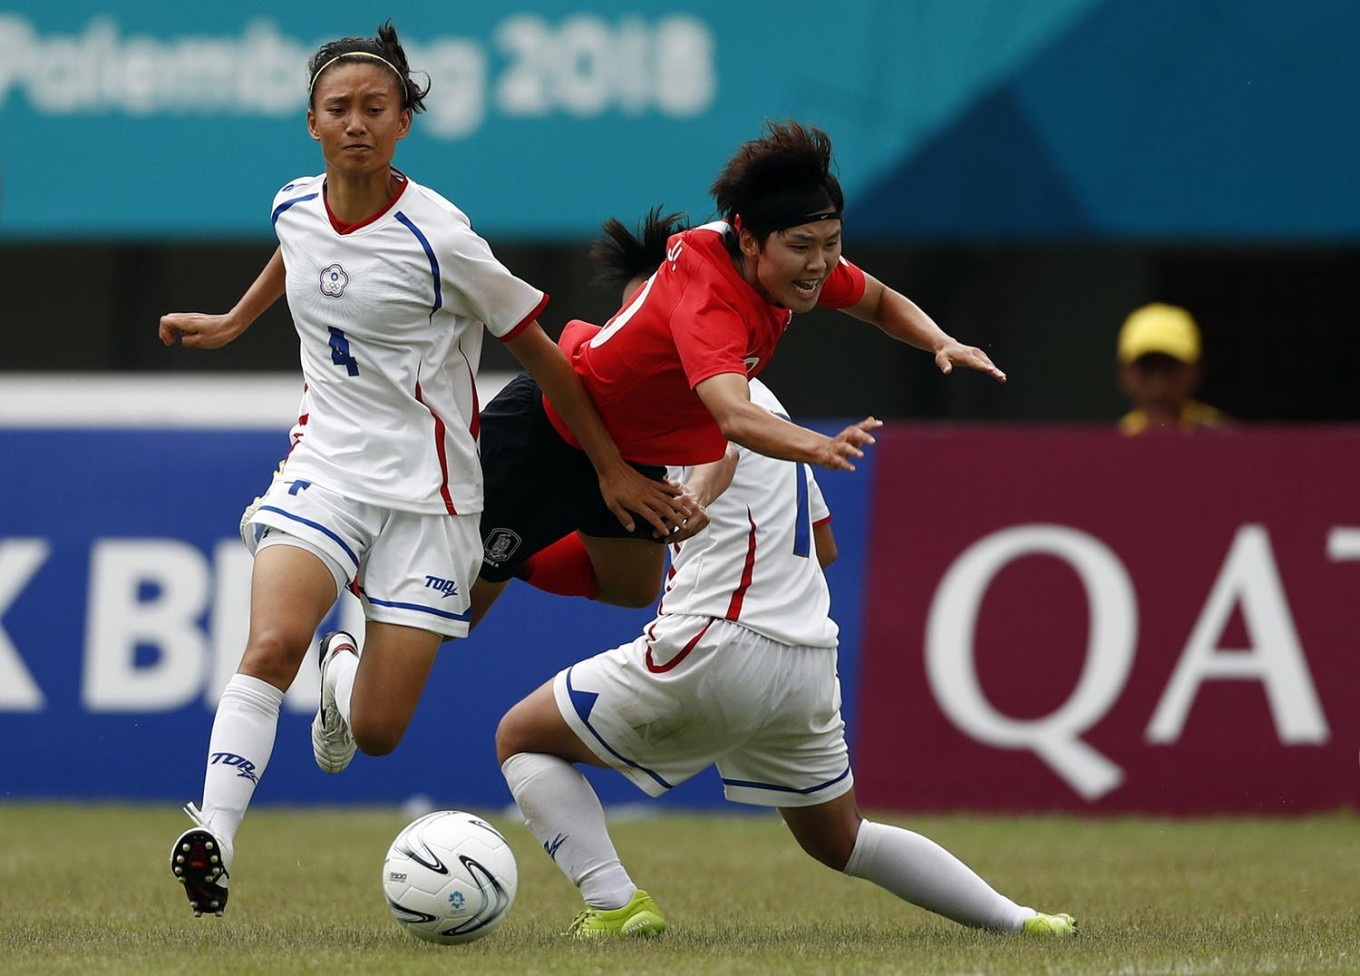 Asian Games: South Korea wins third bronze medal in women's soccer